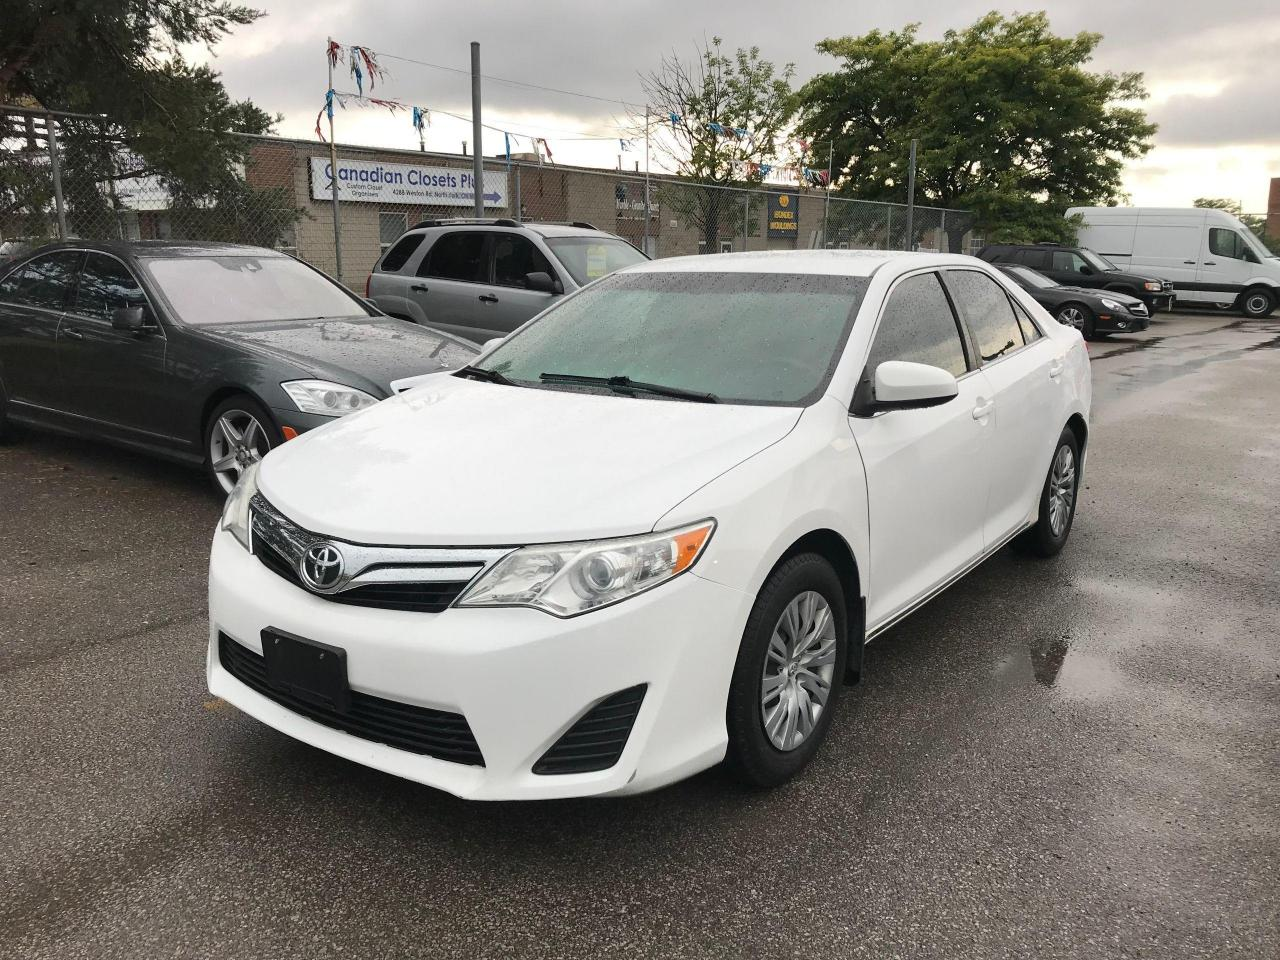 used 2012 toyota camry le,121 km,safety 3 years warranty included for sale in toronto, ontario carpages.ca